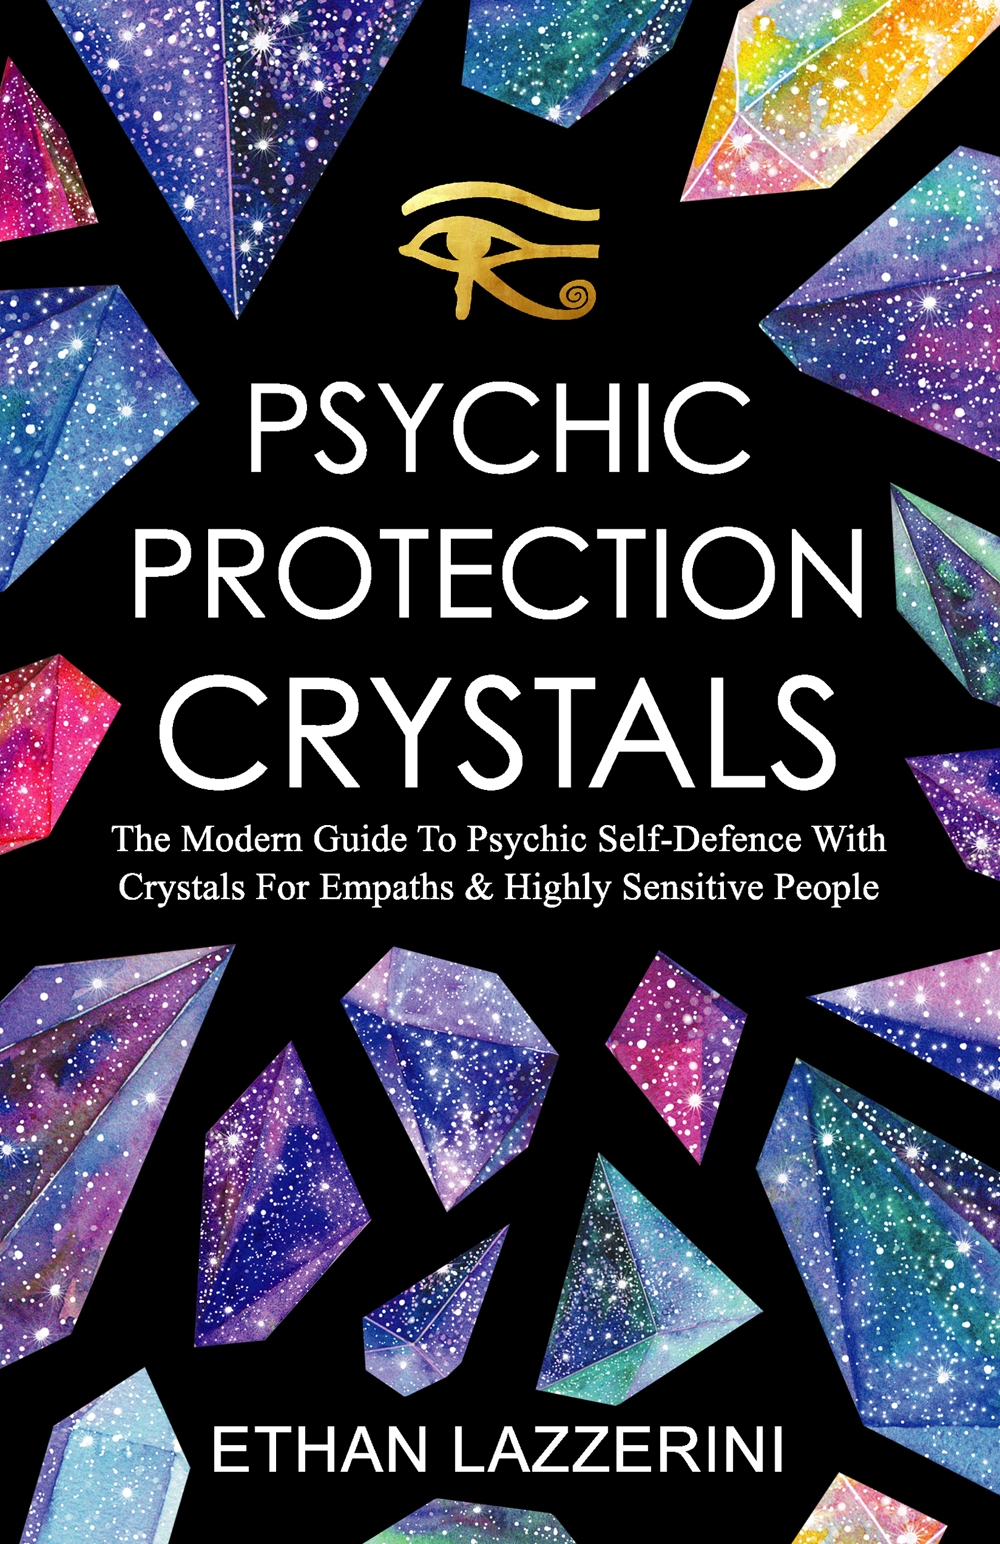 Psychic Protection Crystals book